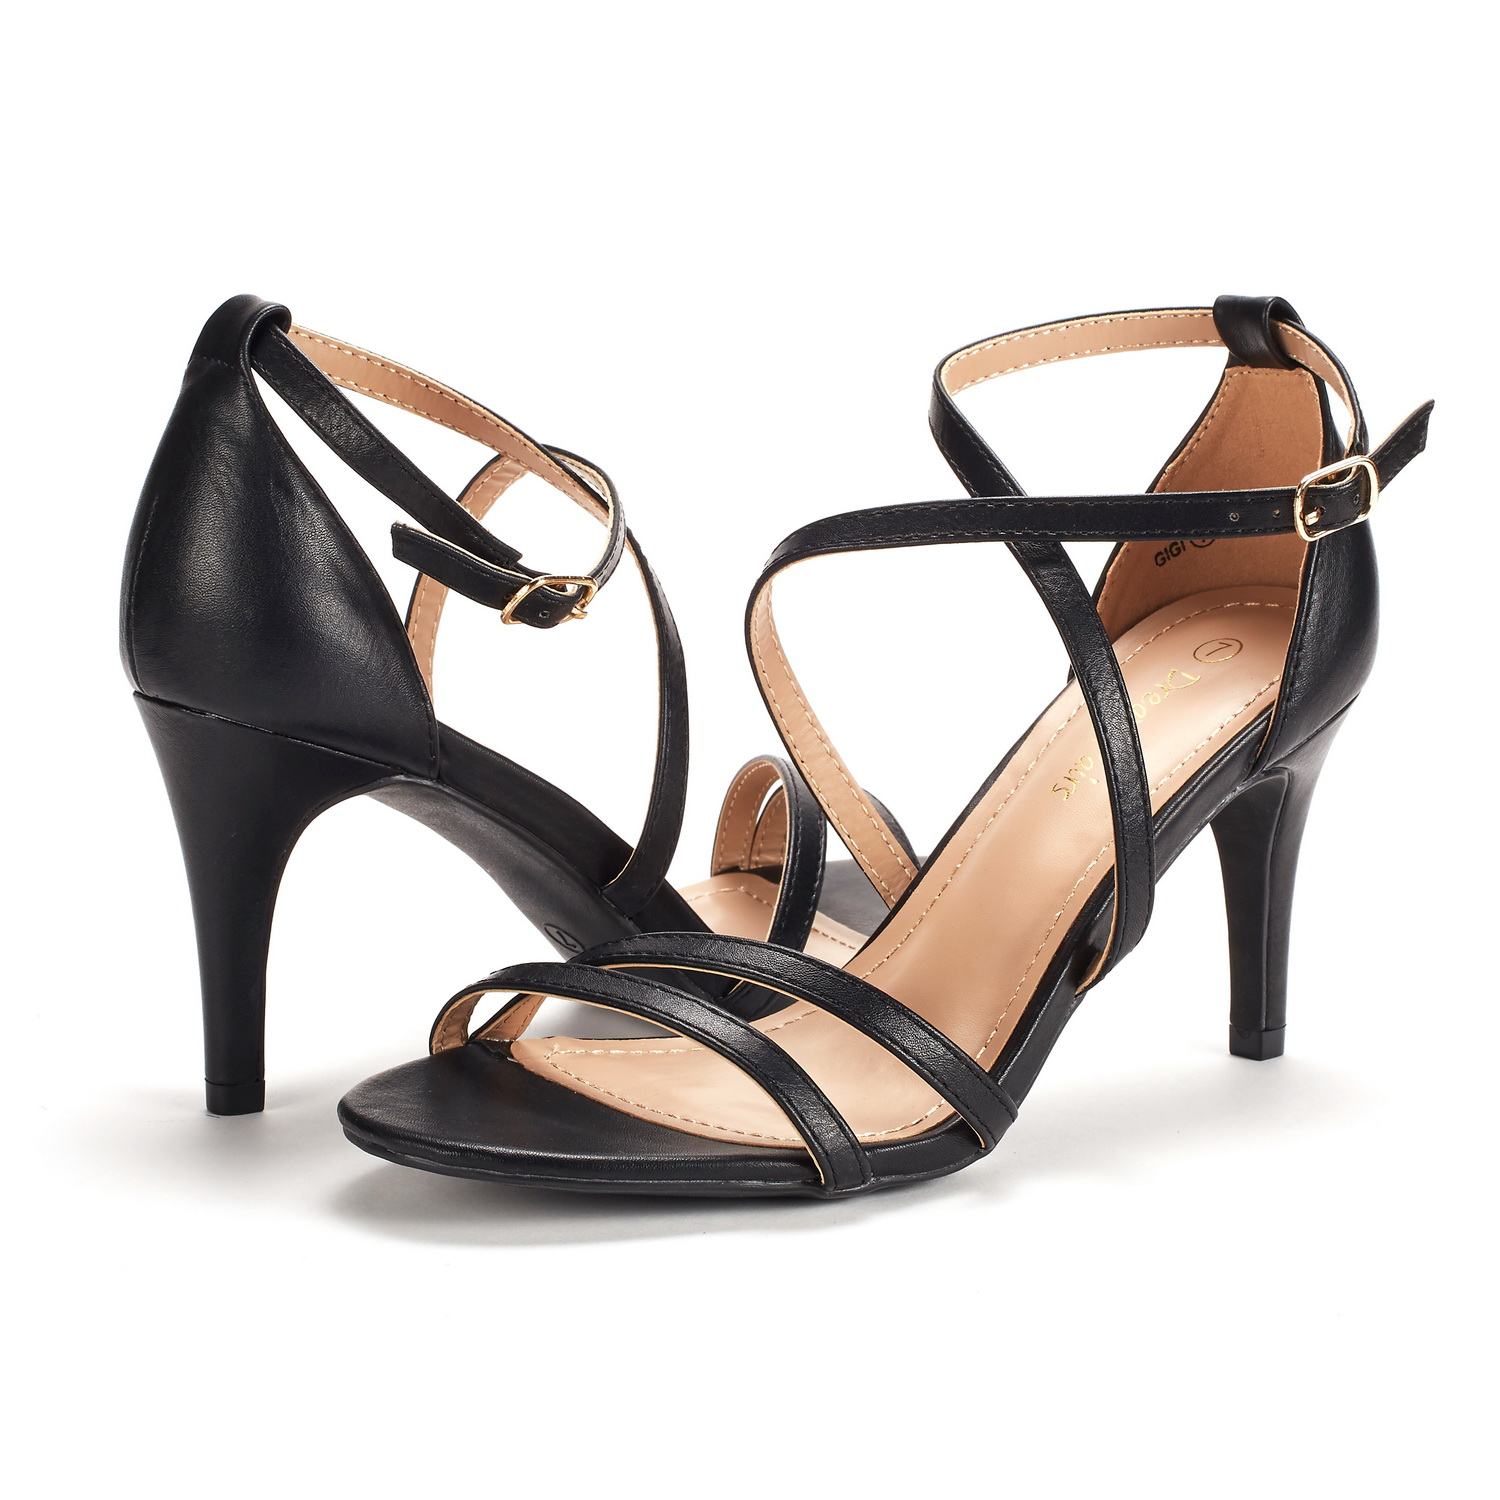 DREAM-PAIRS-Women-039-s-Ankle-Strap-High-Heel-Sandals-Dress-Shoes-Wedding-Party thumbnail 13